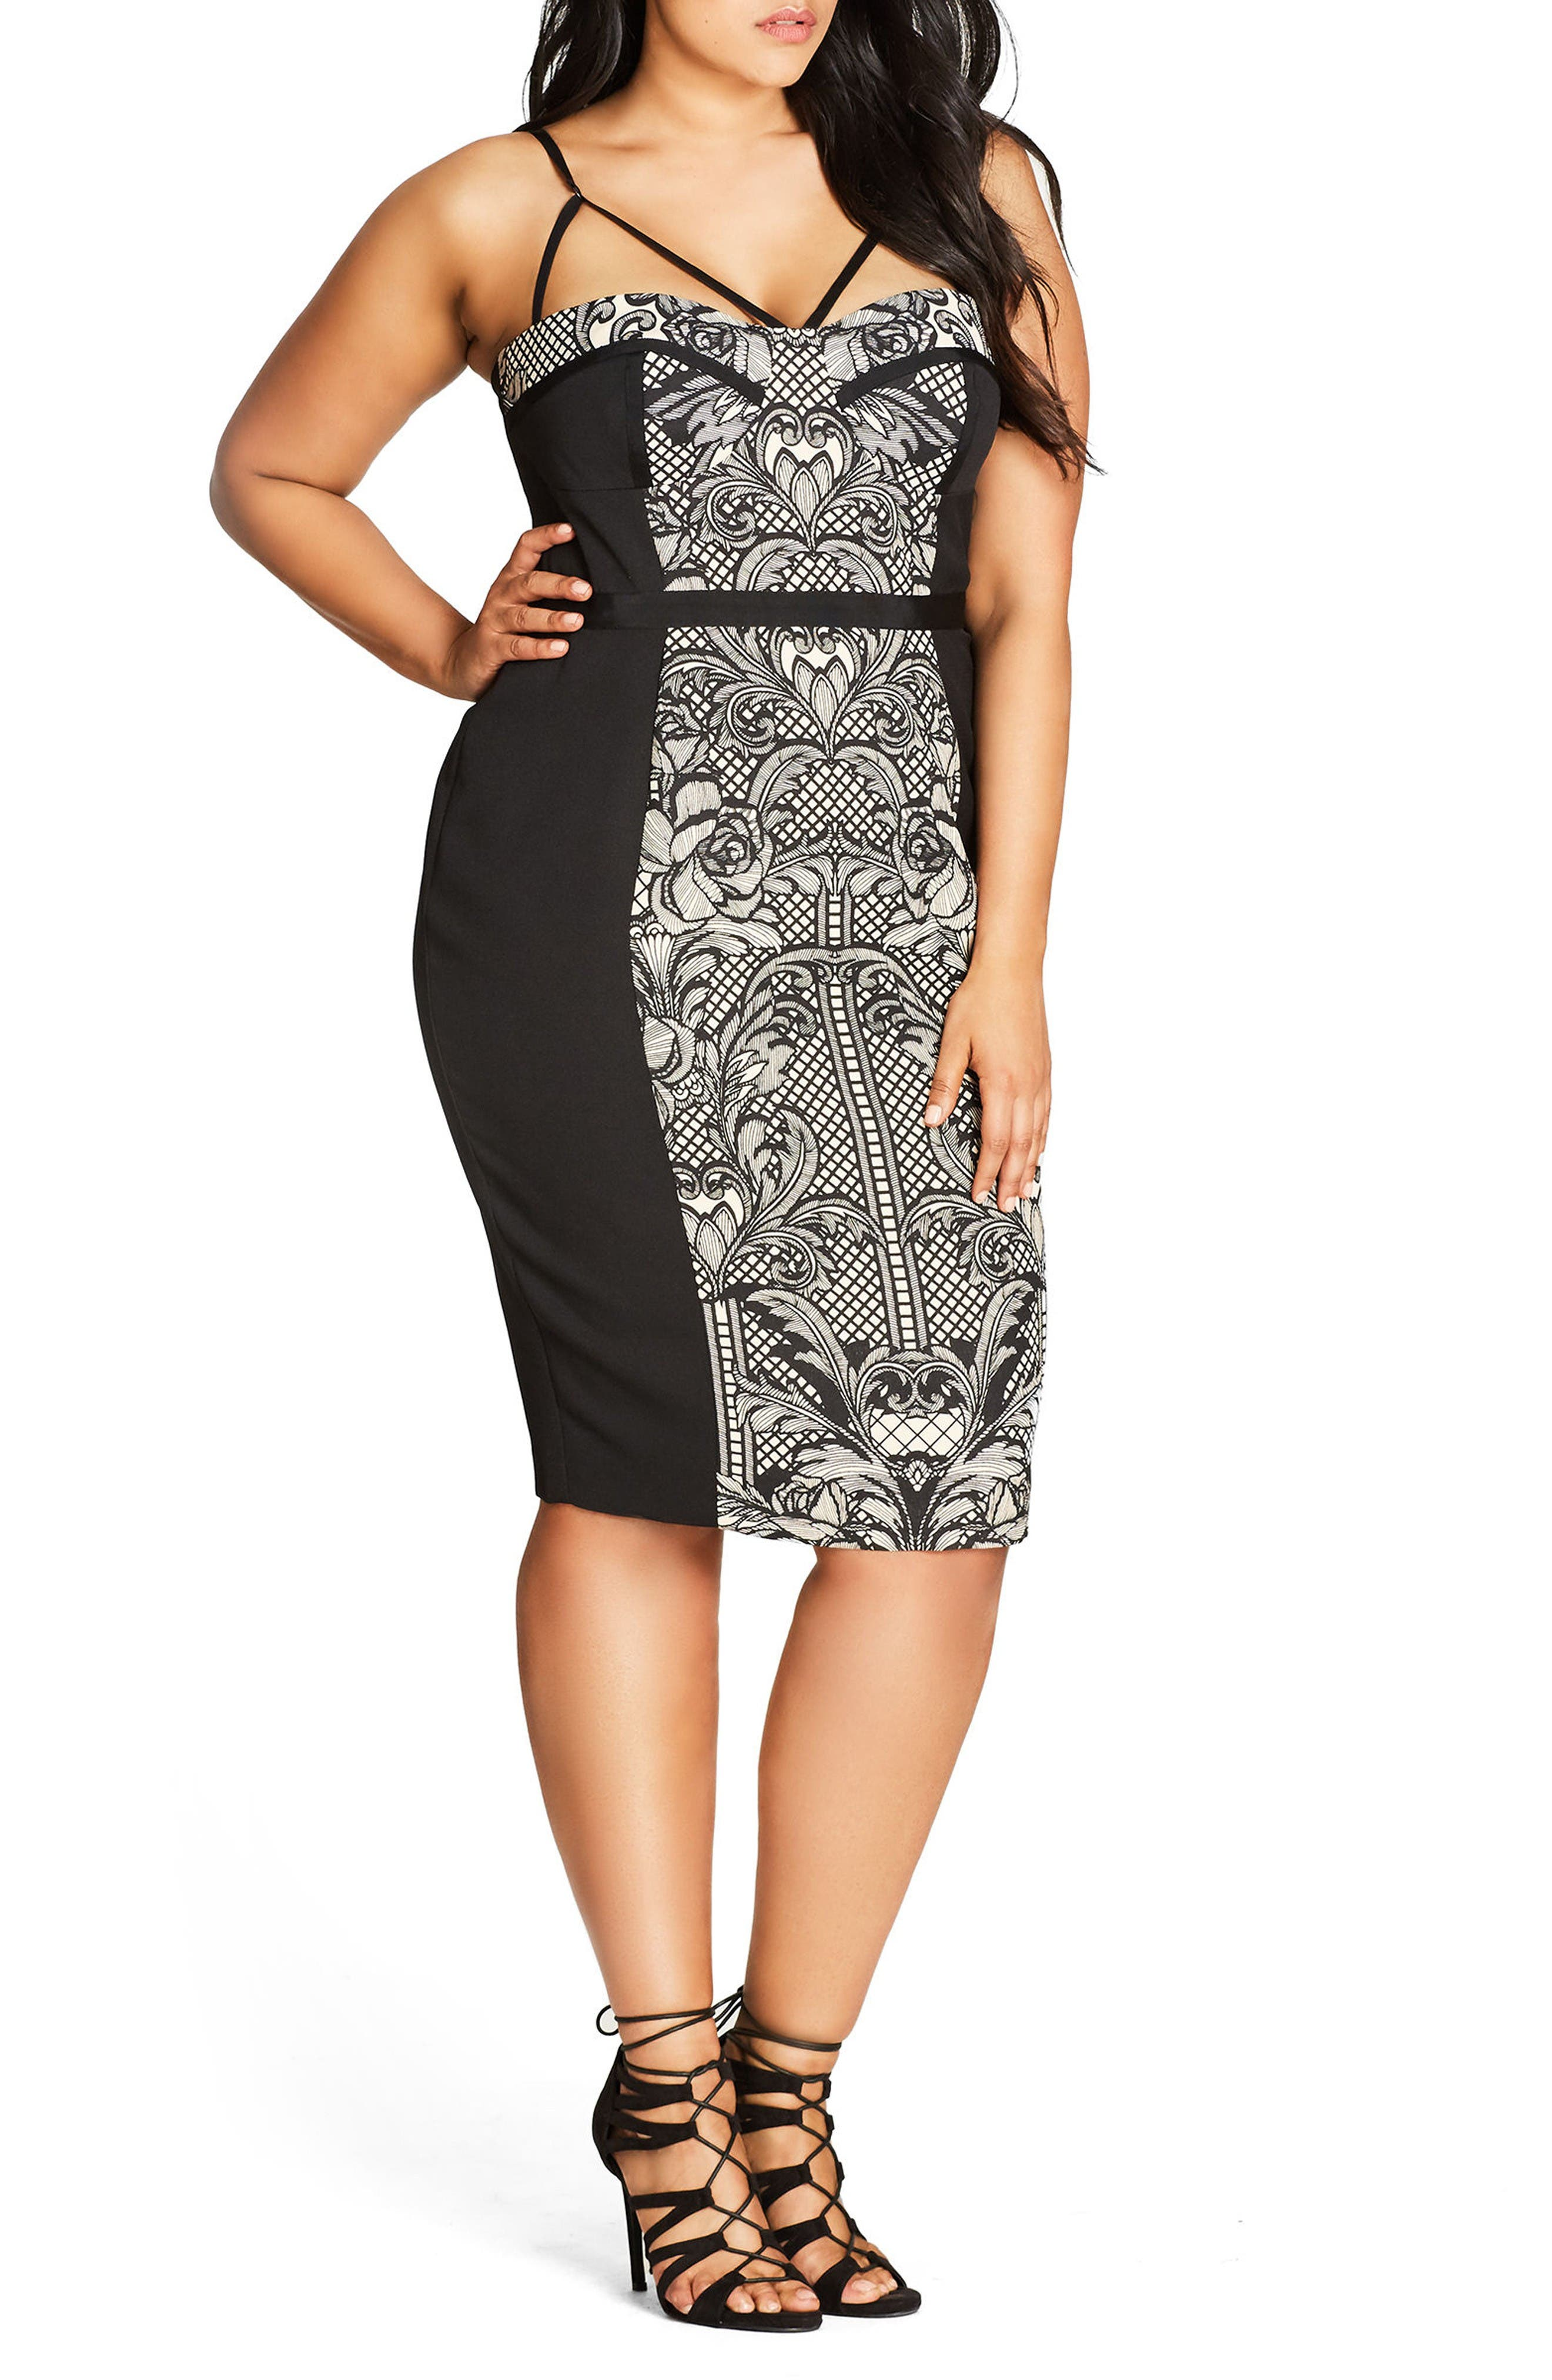 Alternate Image 1 Selected - City Chic Seductive Strappy Block Print Sheath Dress (Plus Size)